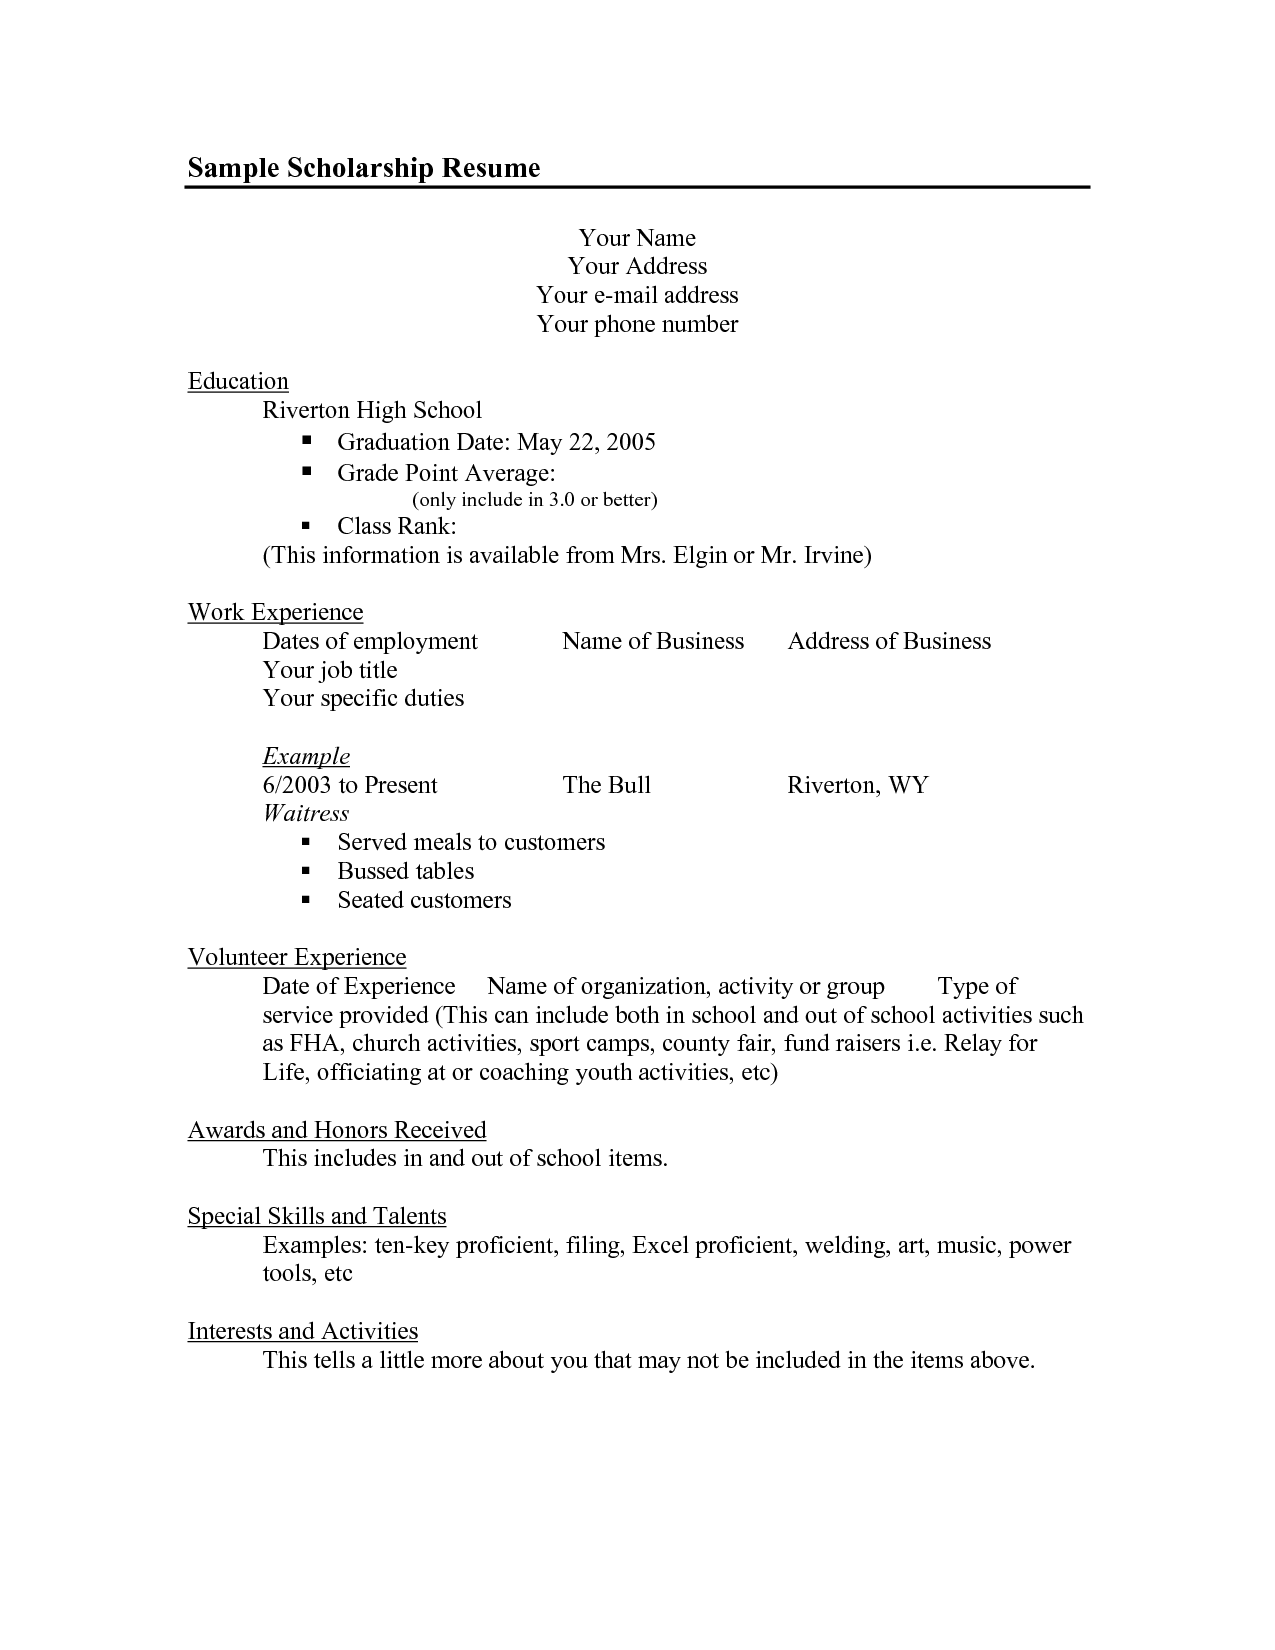 College Resume Template For Highschool Students Scholarship Resume Templates Sample Scholarship Resume